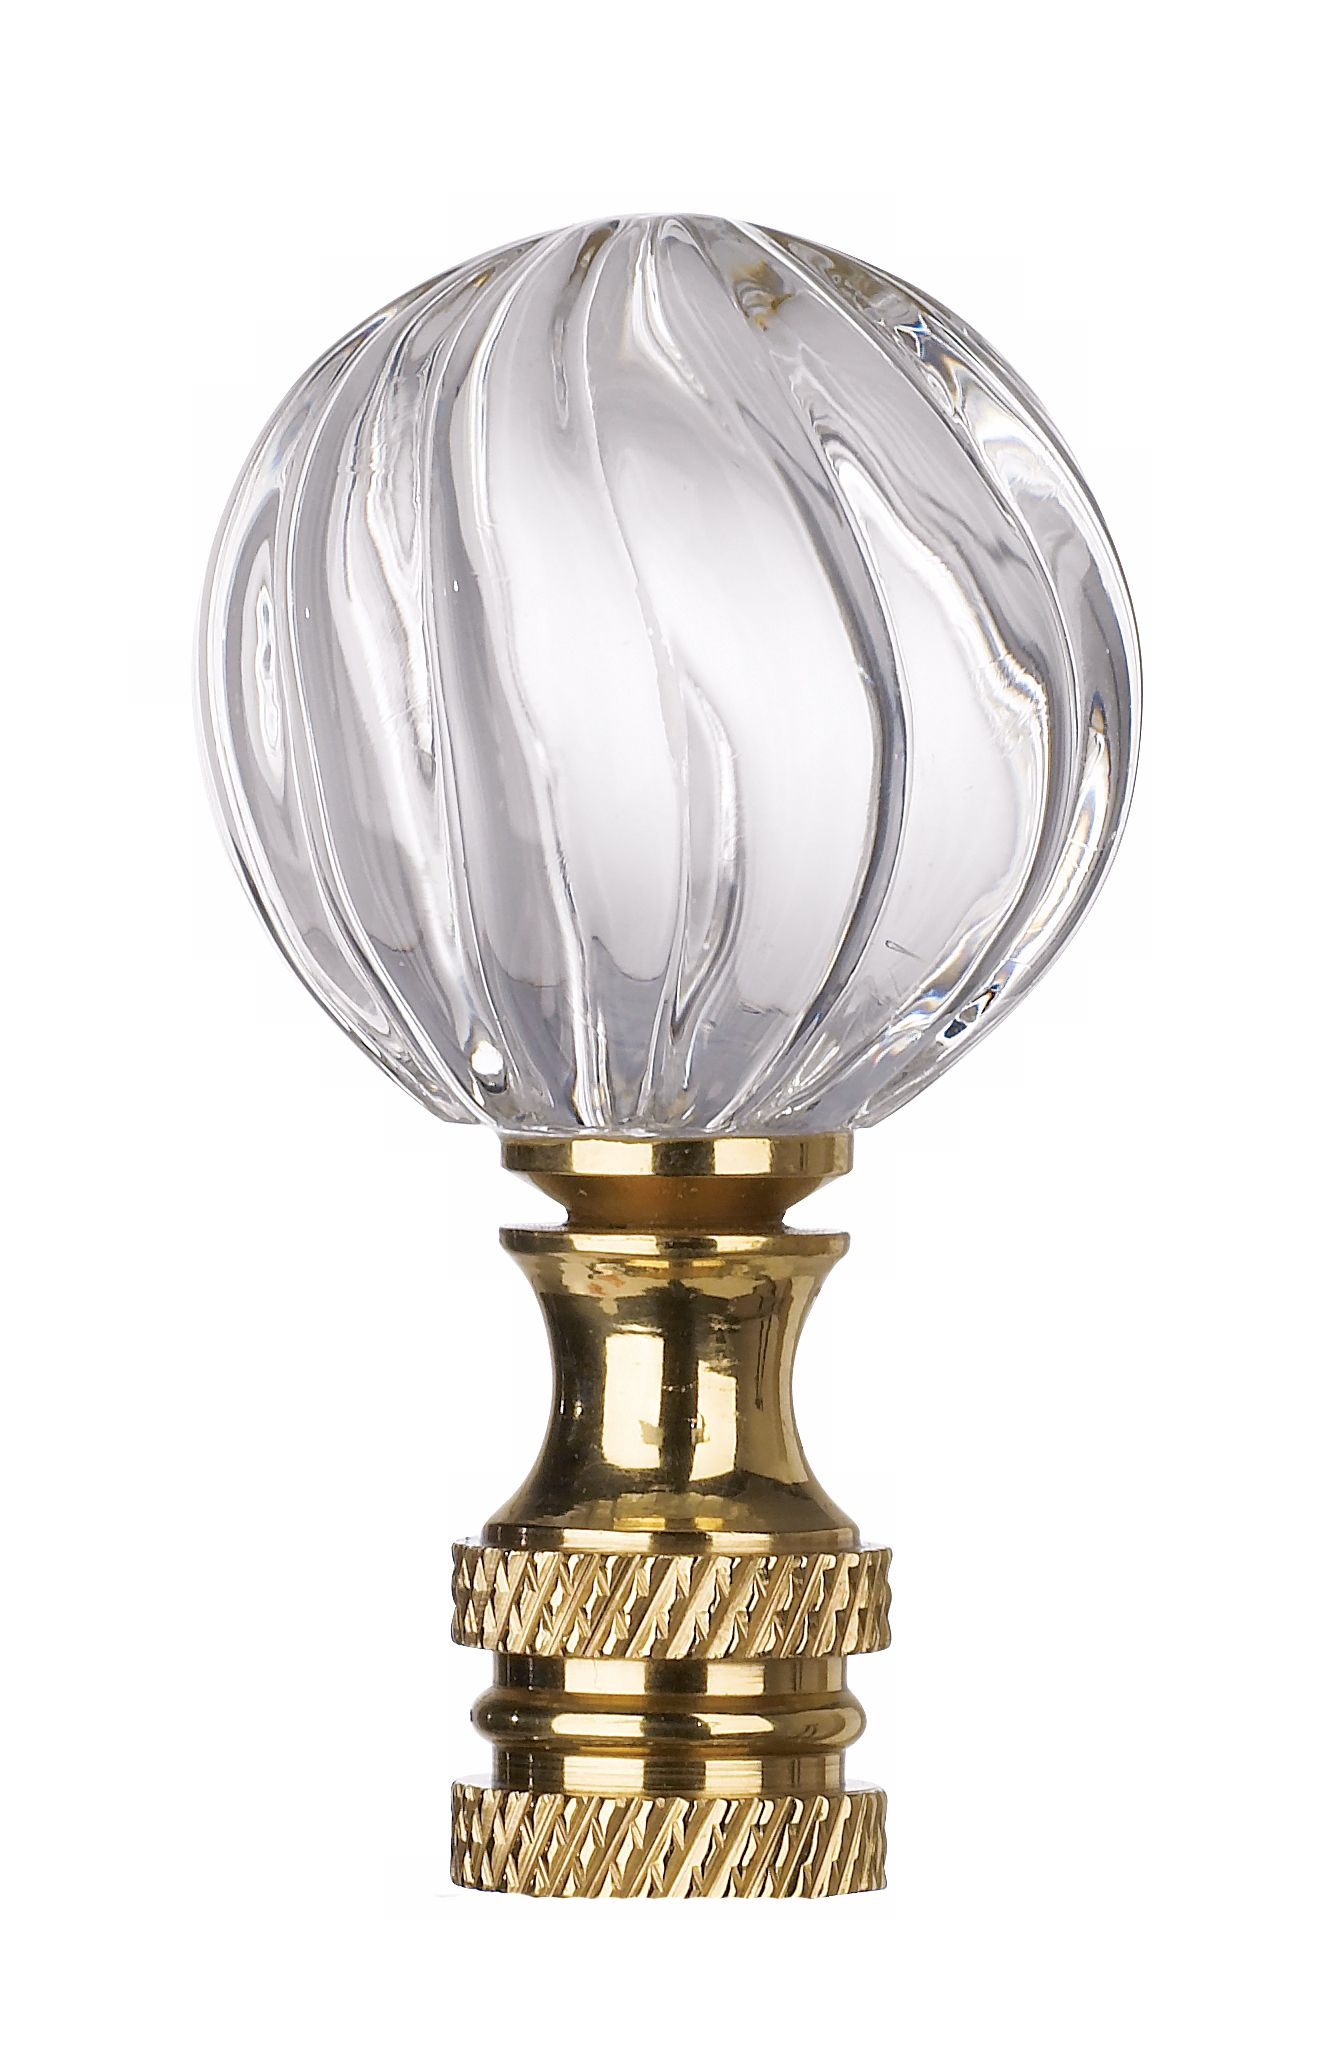 Lovely Clear Glass Swirl Lamp Shade Finial